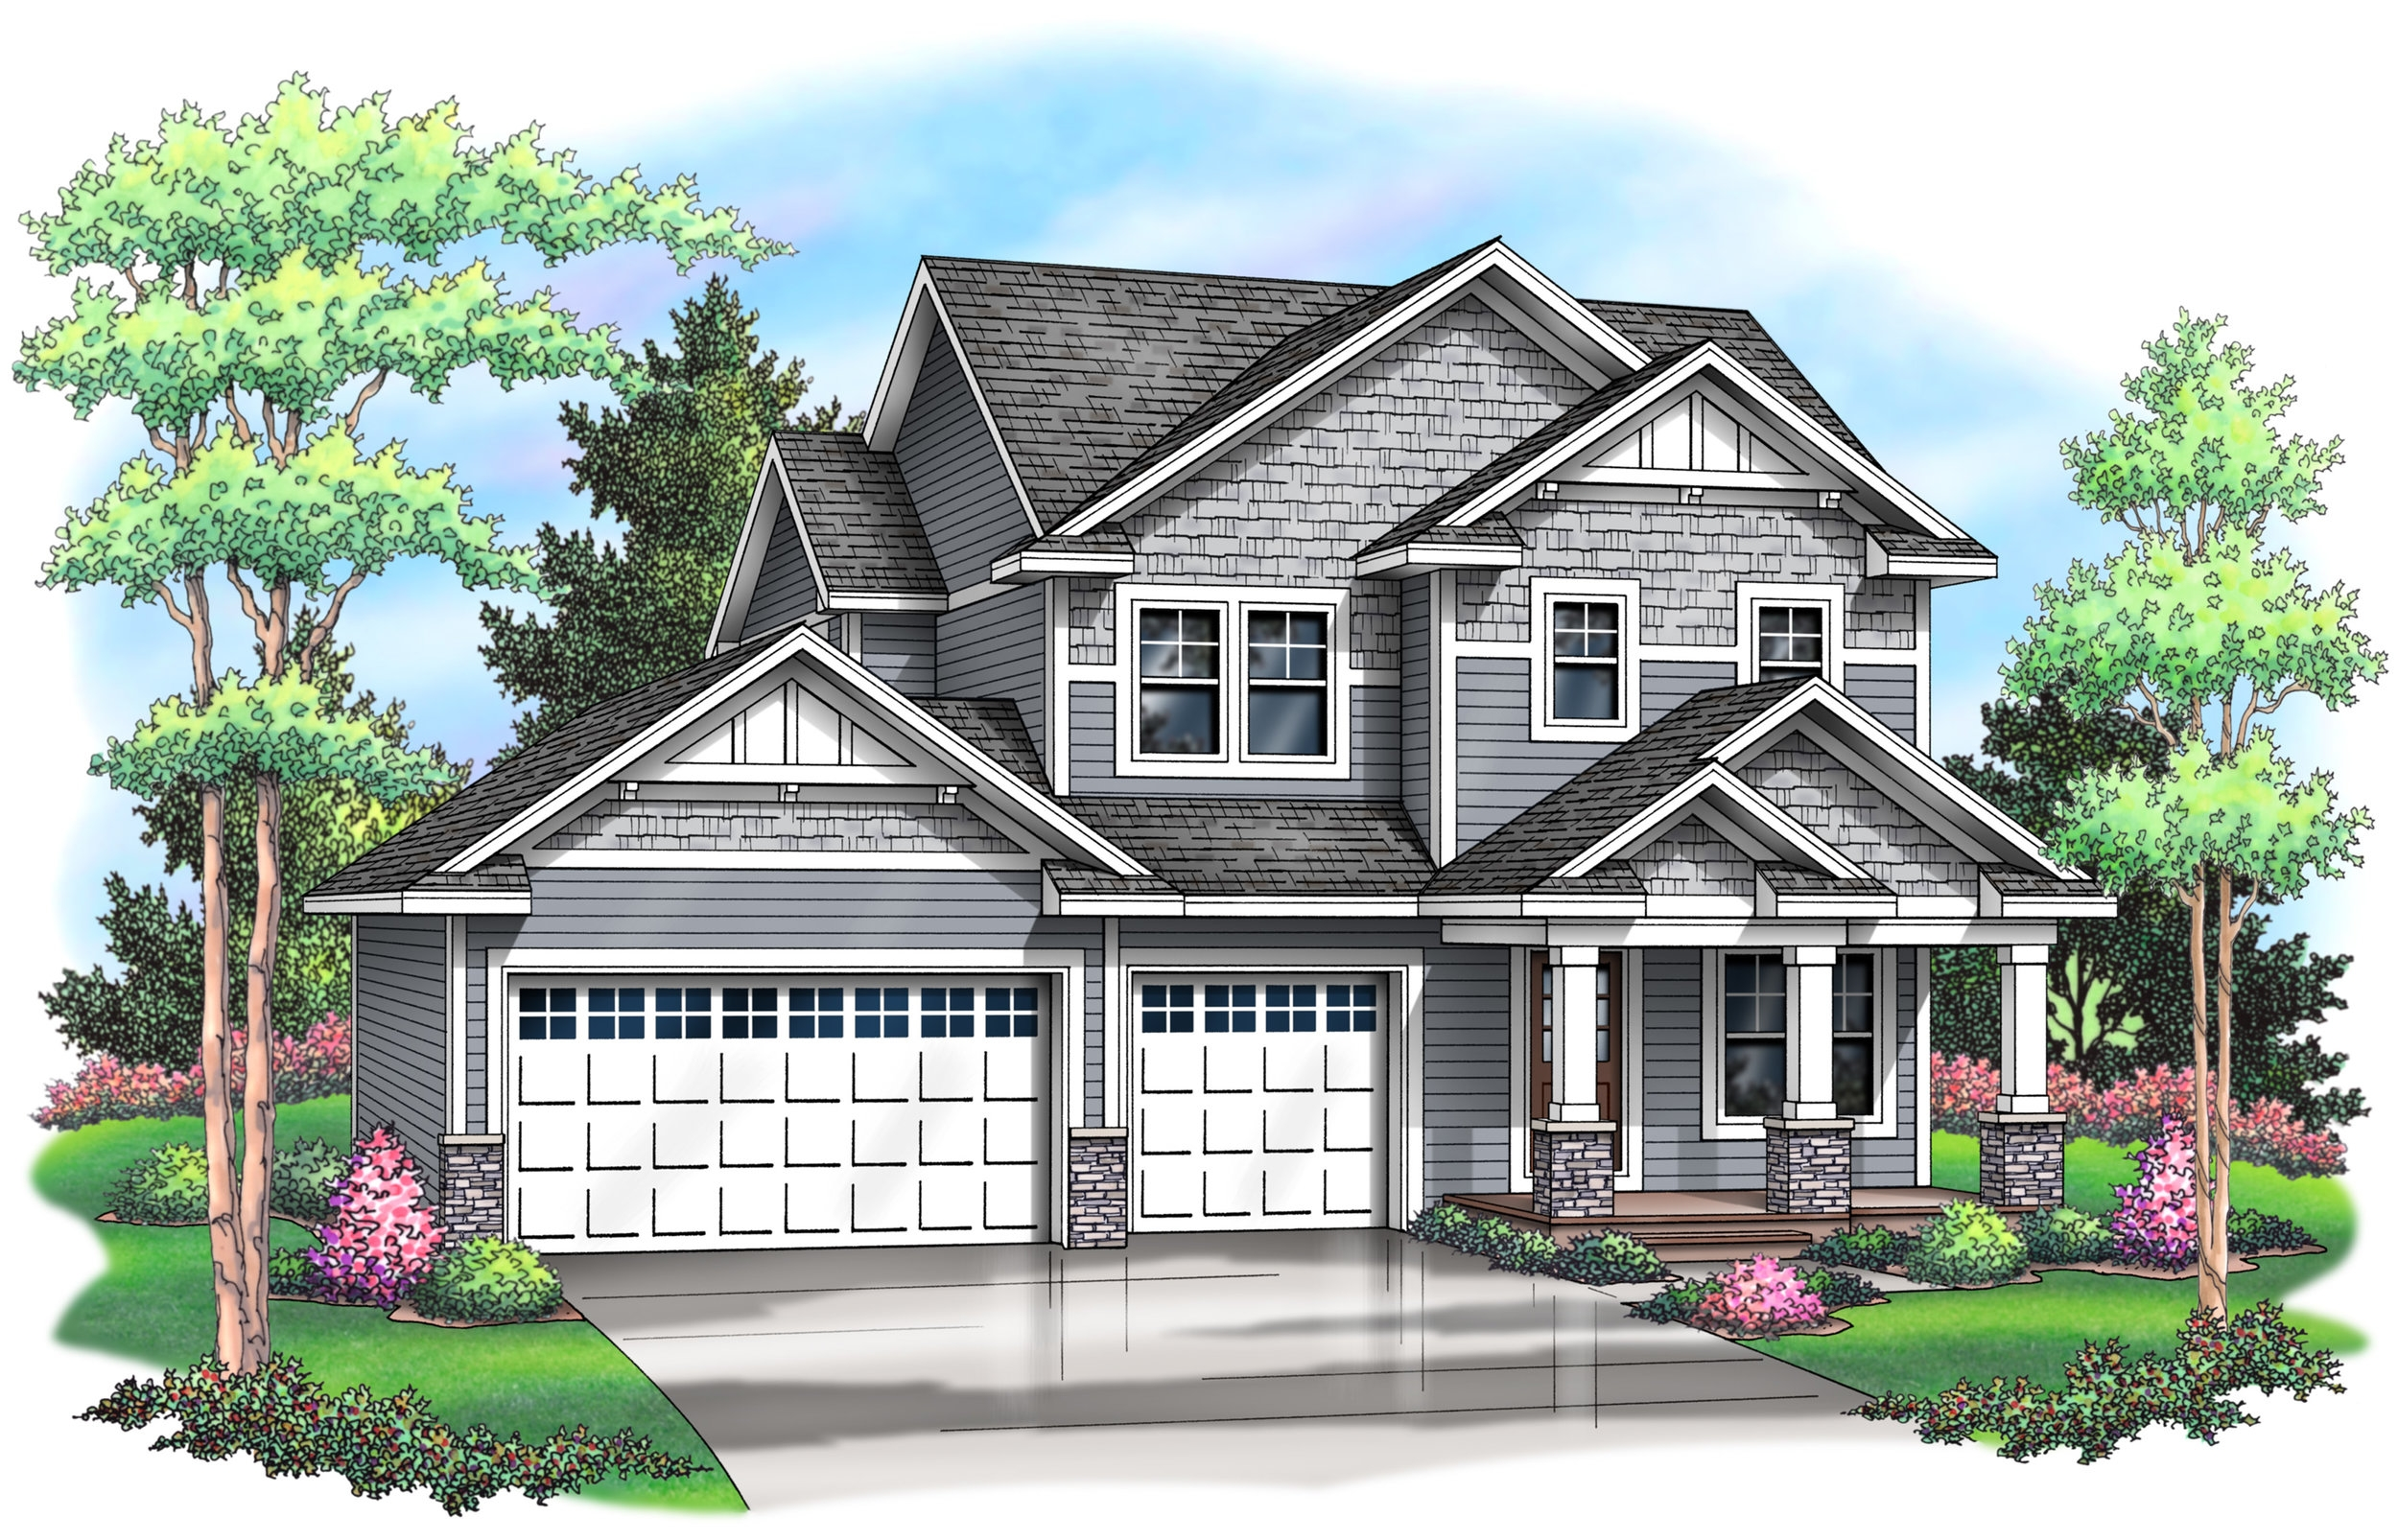 The Quinn Two Story Plan - This two story plan features 4 bedrooms and laundry on the upper level! Open floor plan on the main level features a spacious great room. Enjoy the pocket office and a mudroom off the 3 car garage.Price Range: 454,900Square Footage: 2,318Bedrooms: 4Bathrooms: 3.5